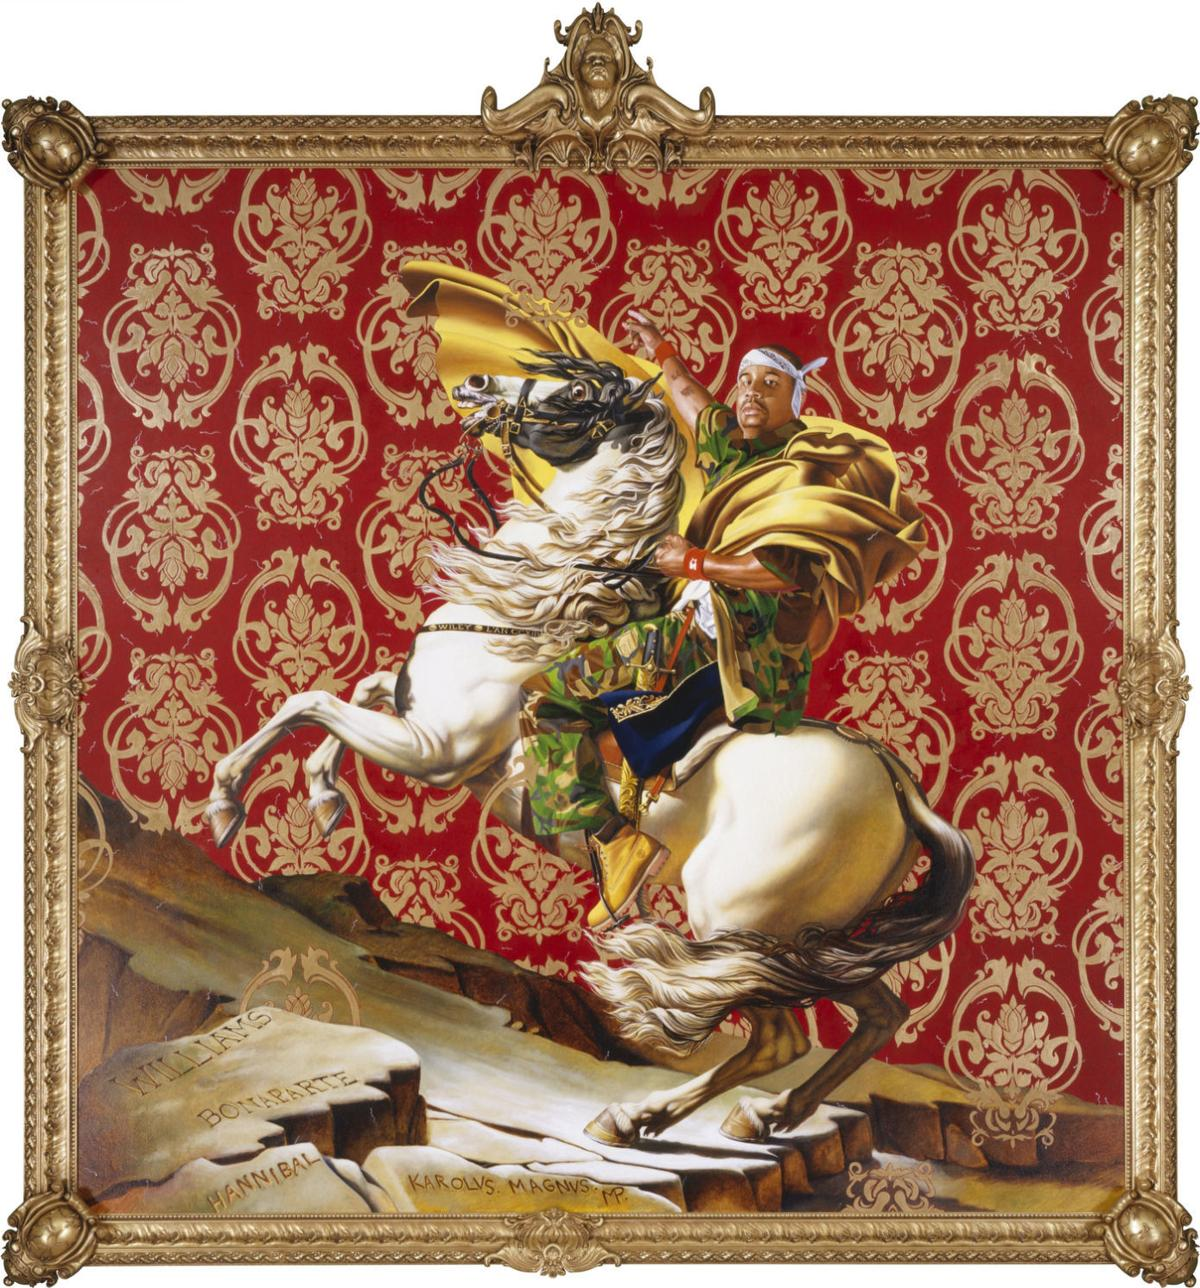 'Napoleon Leading the Army over the Alps' by Kehinde Wiley